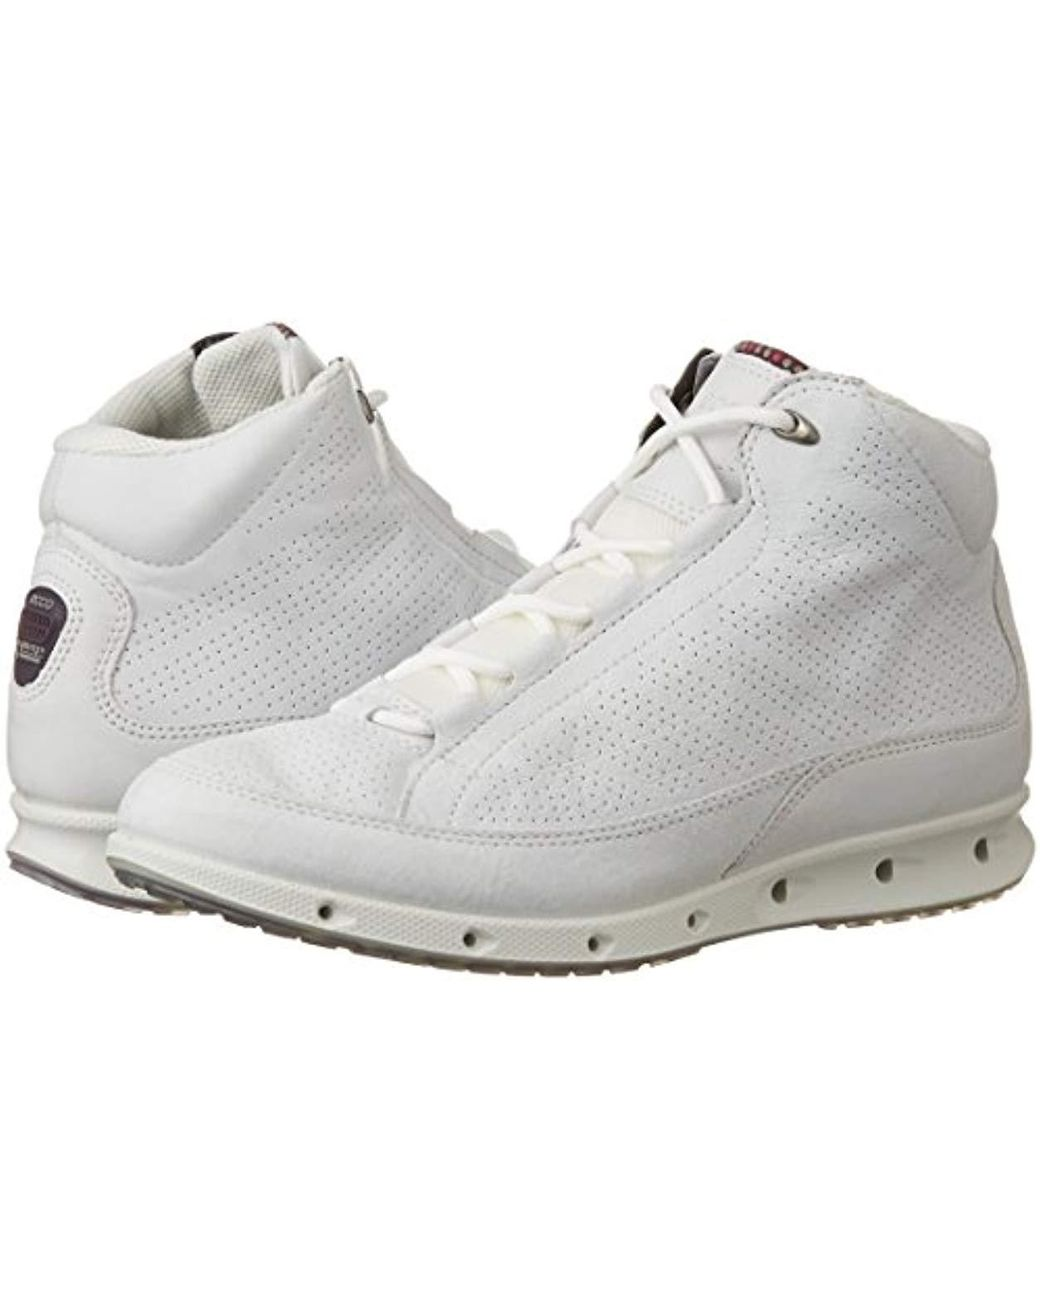 new product 100% high quality promo codes Ecco Leather Cool Multisport Outdoor Shoes in White - Lyst